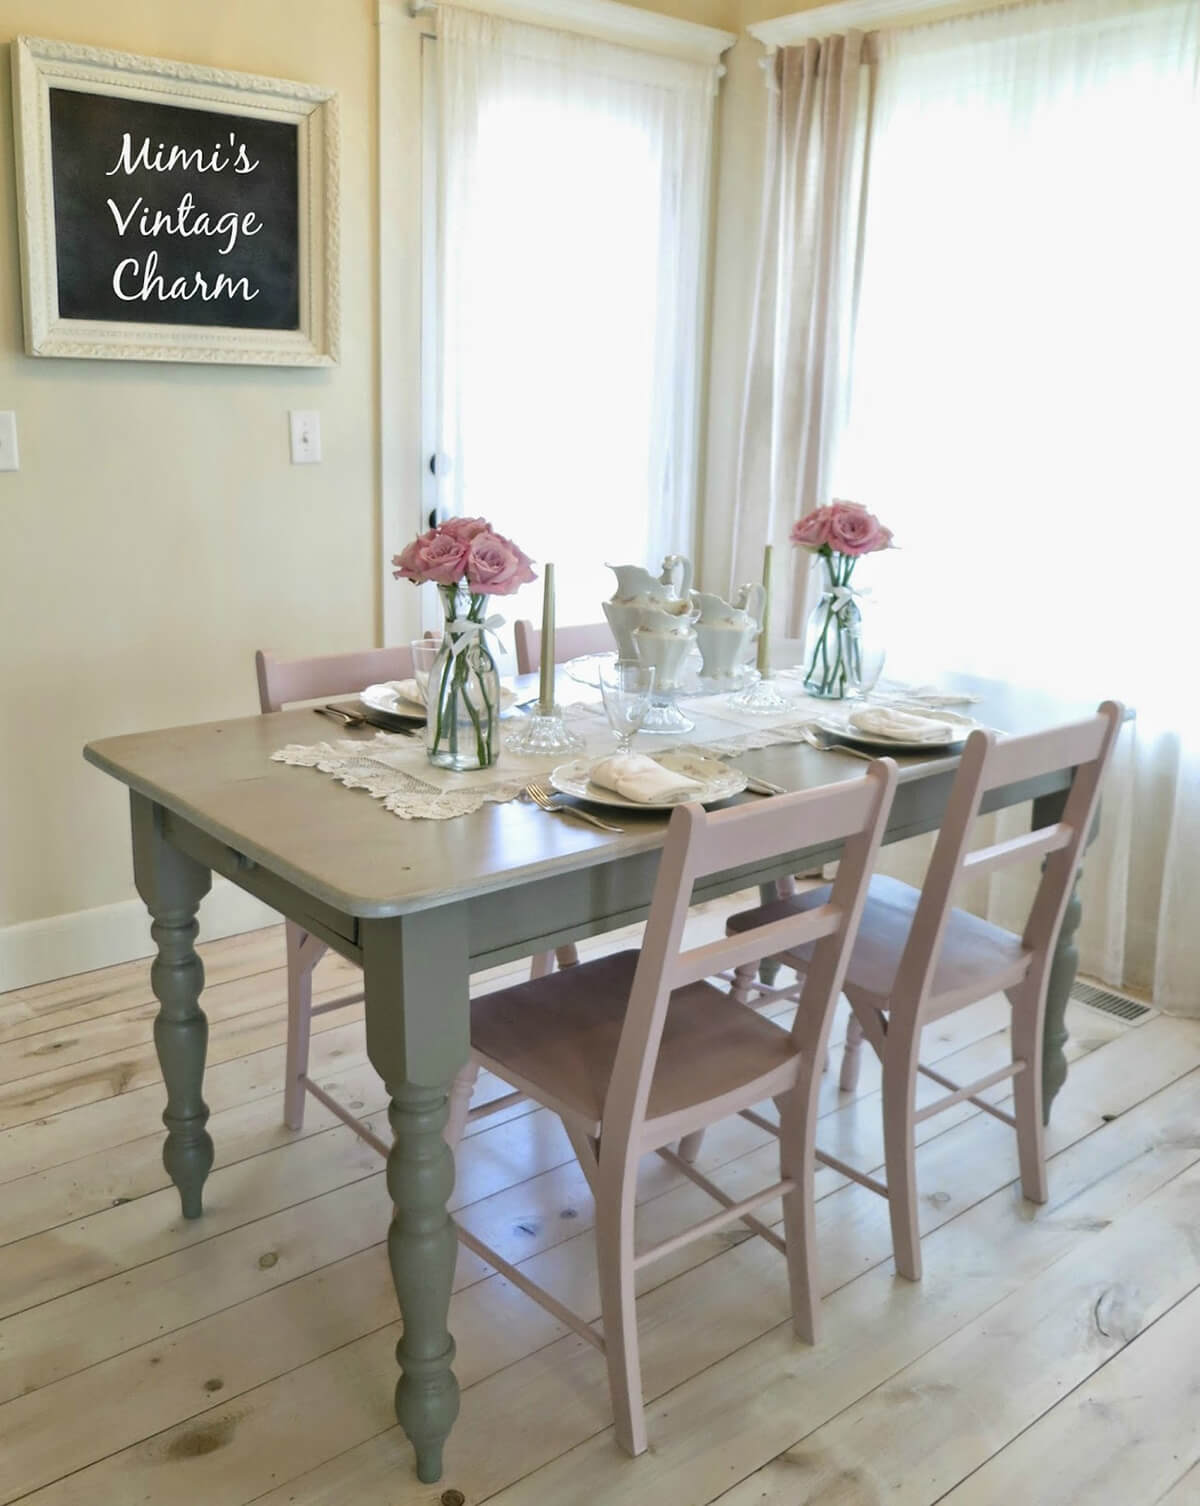 Simple Jars and Antique Cutlery